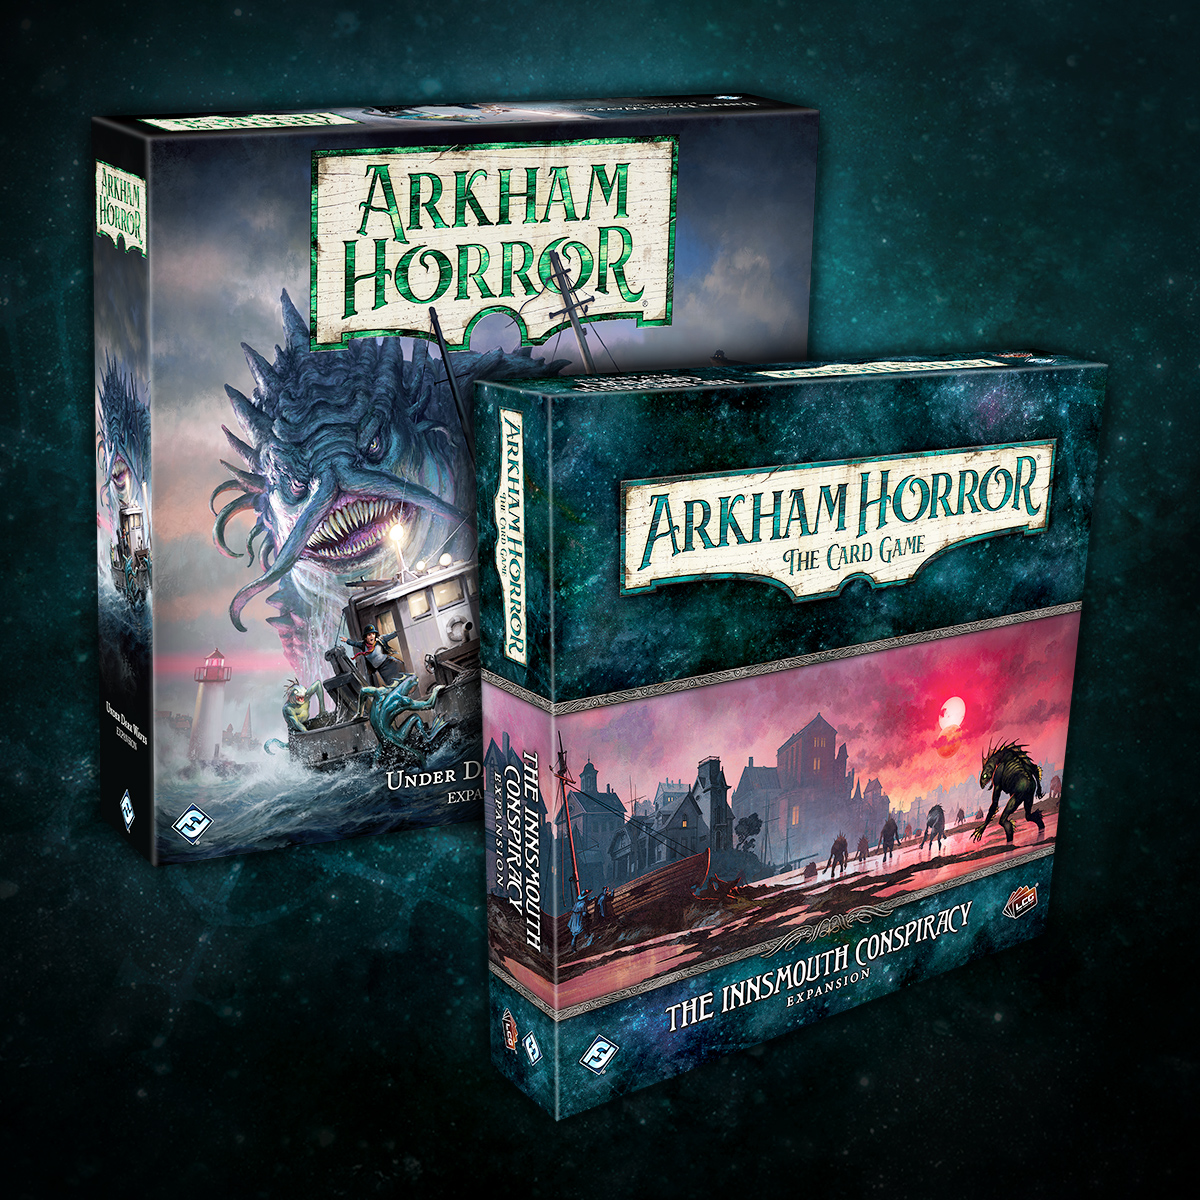 This fall, we're going to Innsmouth! With the Under Dark Waves expansion for Arkham Horror: The Board Game and The Innsmouth Conspiracy for Arkham Horror: The Card Game, it's the perfect time to visit everyone's favorite Deep One infested fishing hamlet. #ArkhamHorror #boardgame https://t.co/sjj2K0mLky